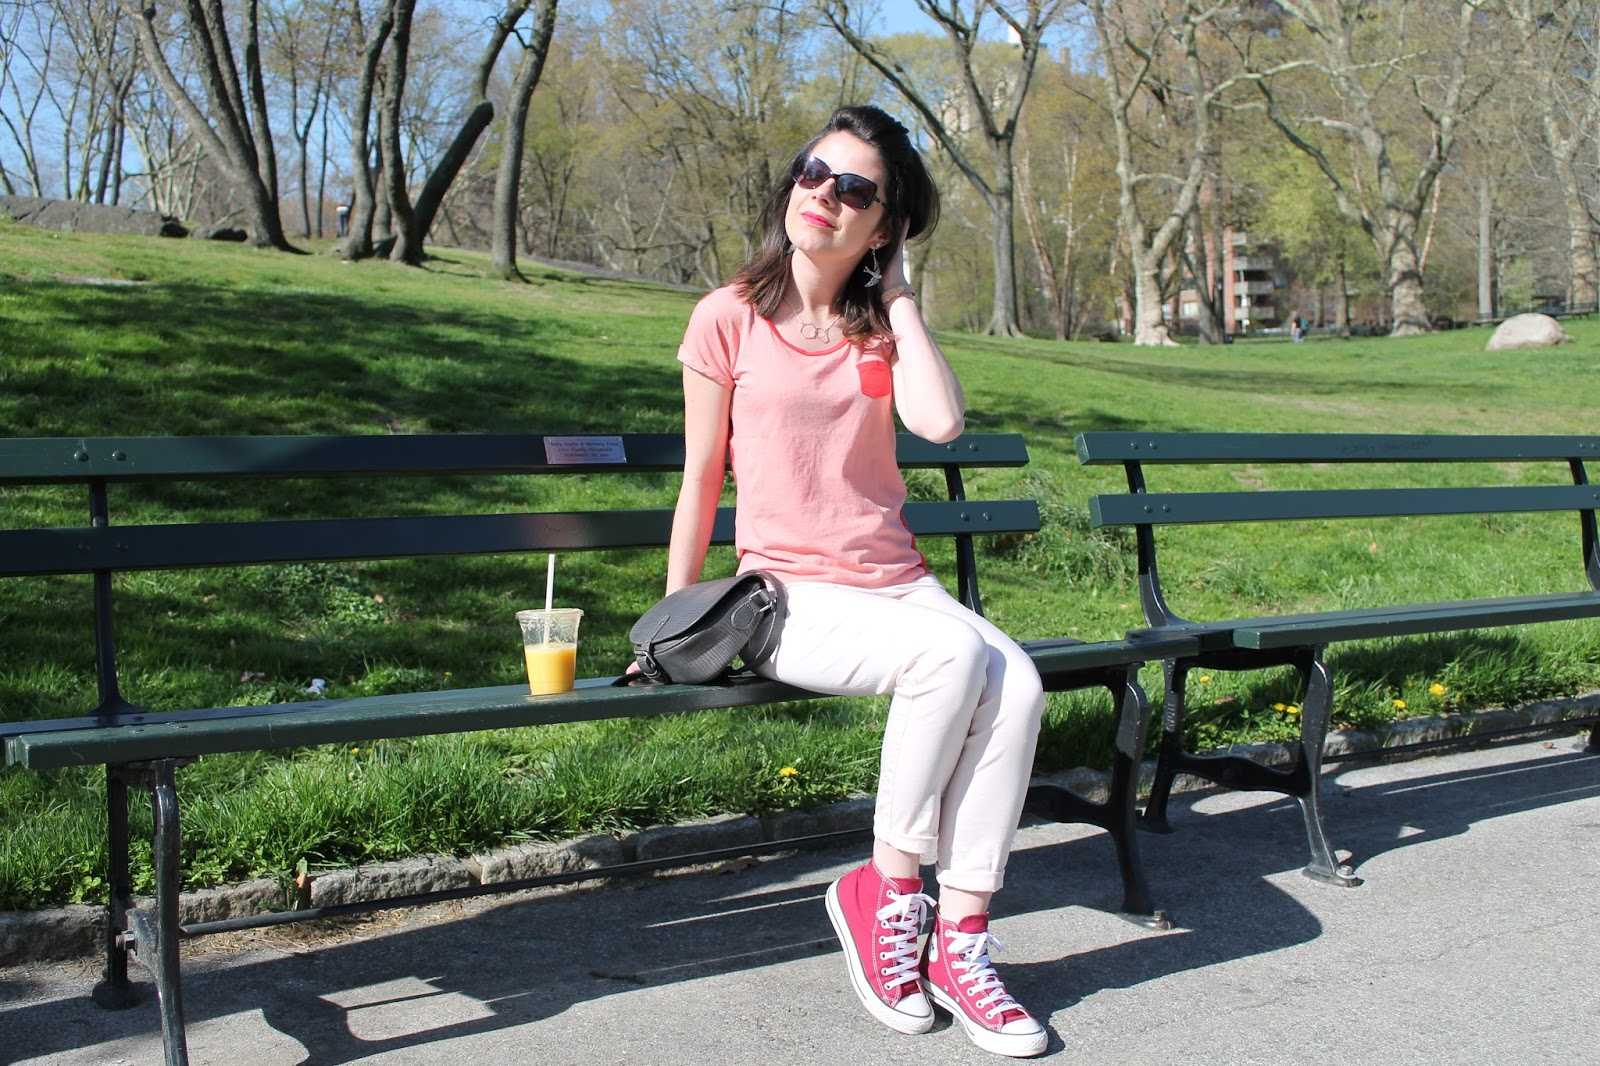 look lookbook ootd mode femme shooting photo central park nyc new york city morning monoprix etam smoothie converse all stars cherry blossom chanel sunglasses dressing post blog les gommettes de melo gomette camaieu bala booste trendy kiss element montre